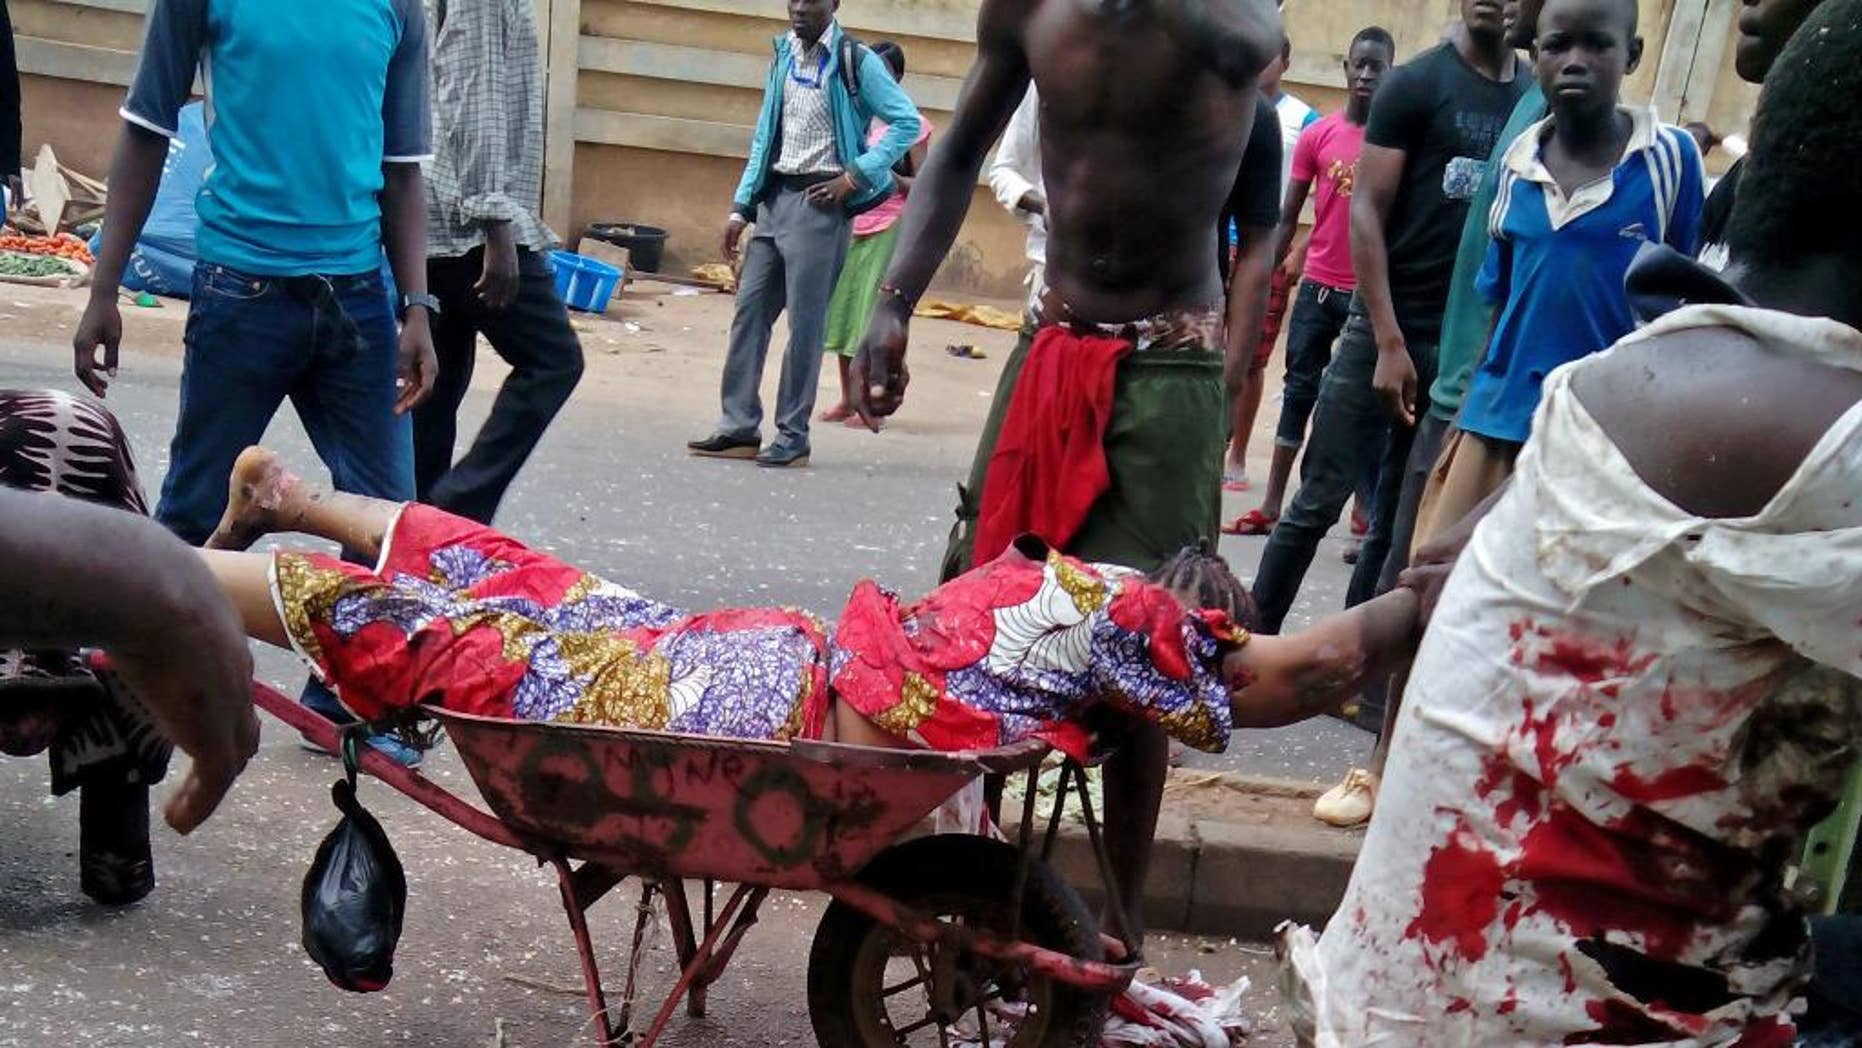 EDITORS NOTE GRAPHIC CONTENT  An injured woman is carried after bombs exploded at a bus terminal and market in Jos, Nigeria, Tuesday, May 20, 2014. Two car bombs exploded at a bustling bus terminal and market in Nigeria's central city of Jos on Tuesday, and witnesses said dozens of people were killed. No one immediately claimed responsibility for the twin car bombs, but they bore the hallmarks of Boko Haram, an Islamic extremist group. (AP Photo/Stefanos Foundation)